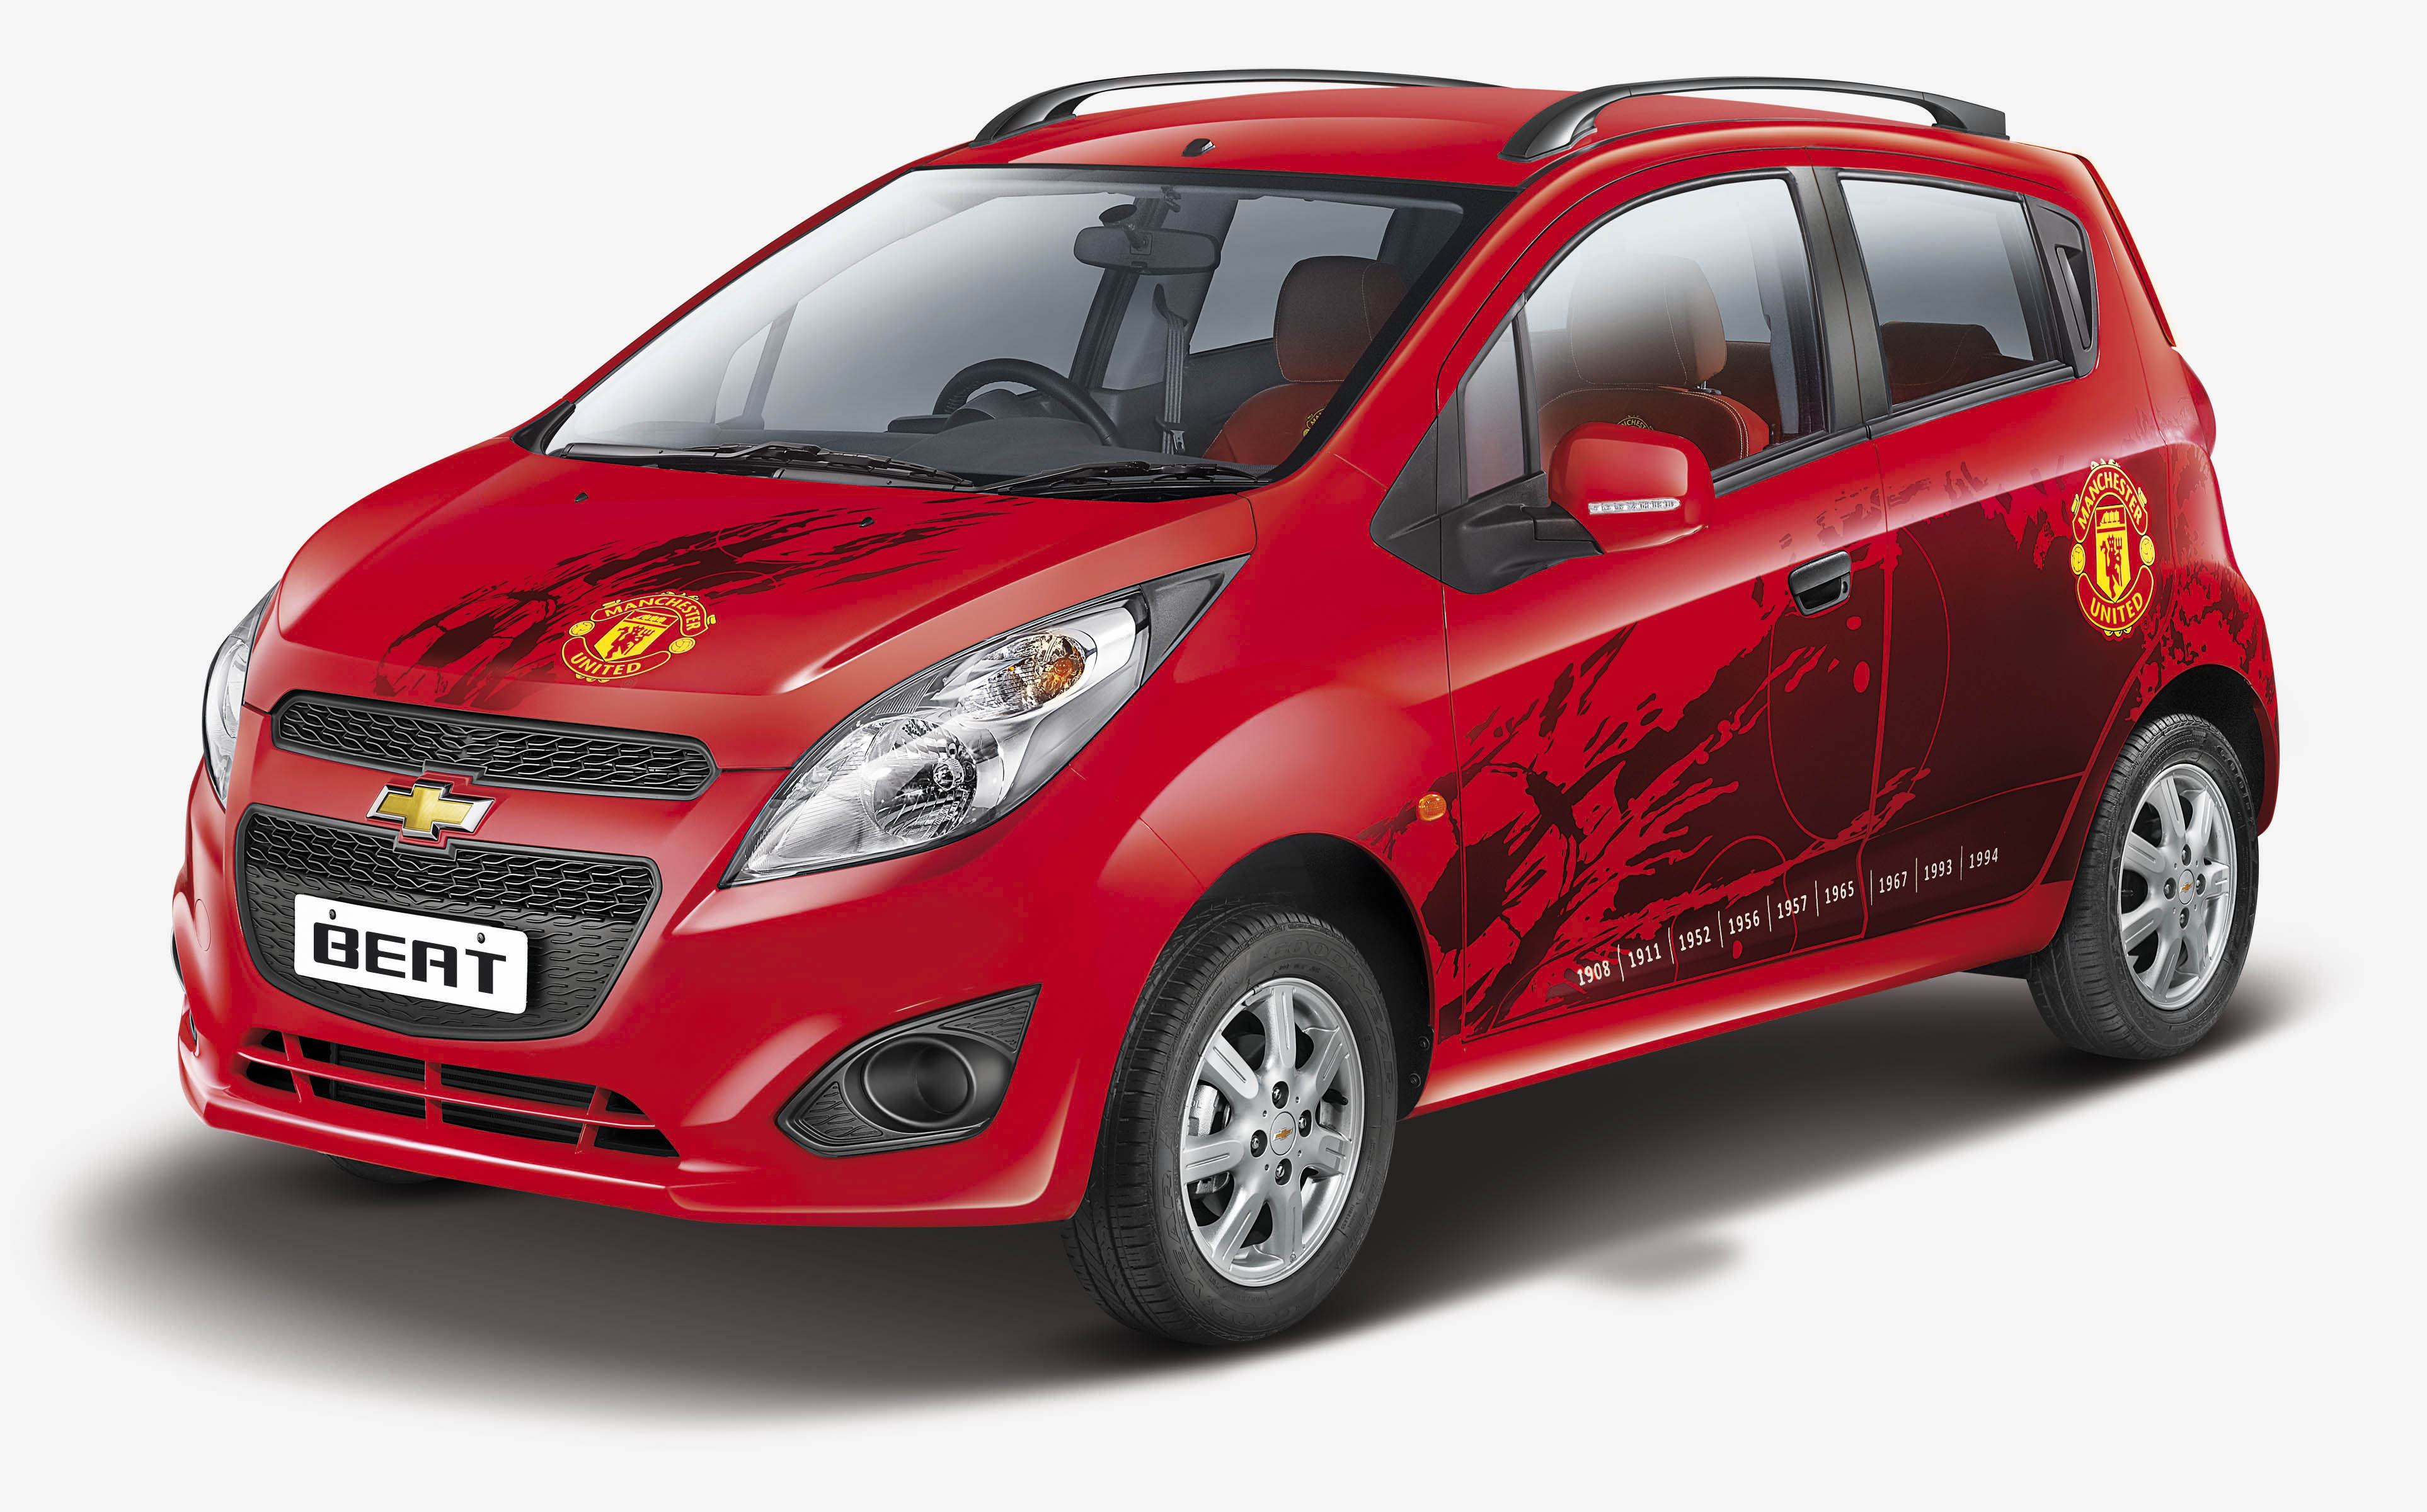 Chevrolet Beat Sail Manchester United edition launched  Autocar